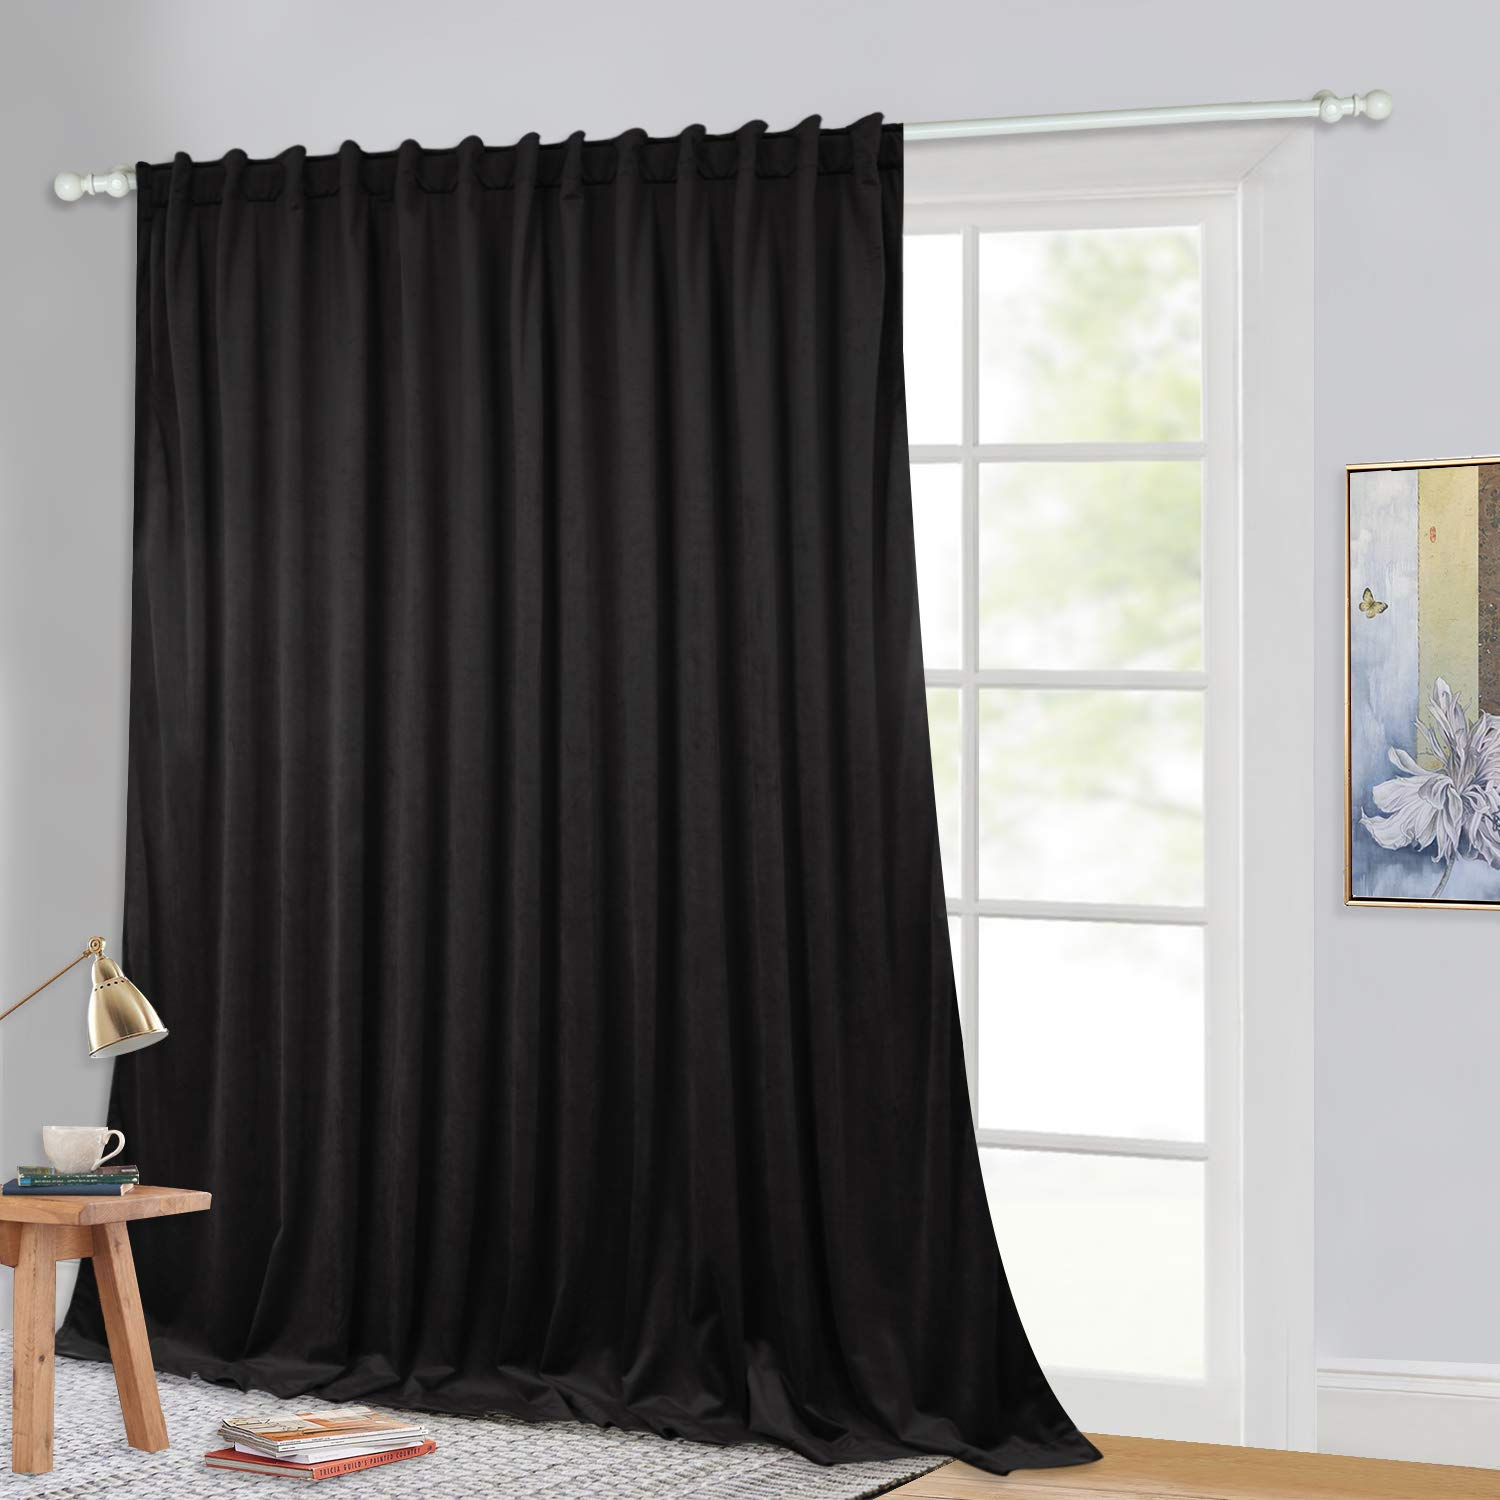 """Thermal Insulated Velvet Curtain Drapes - Double Wide Energy Save Blackout Window Treatment Sliding Door Curtains, Privacy Blinds for French Door/Studio, Wide 100"""" x Long 84"""", 1 Pack"""